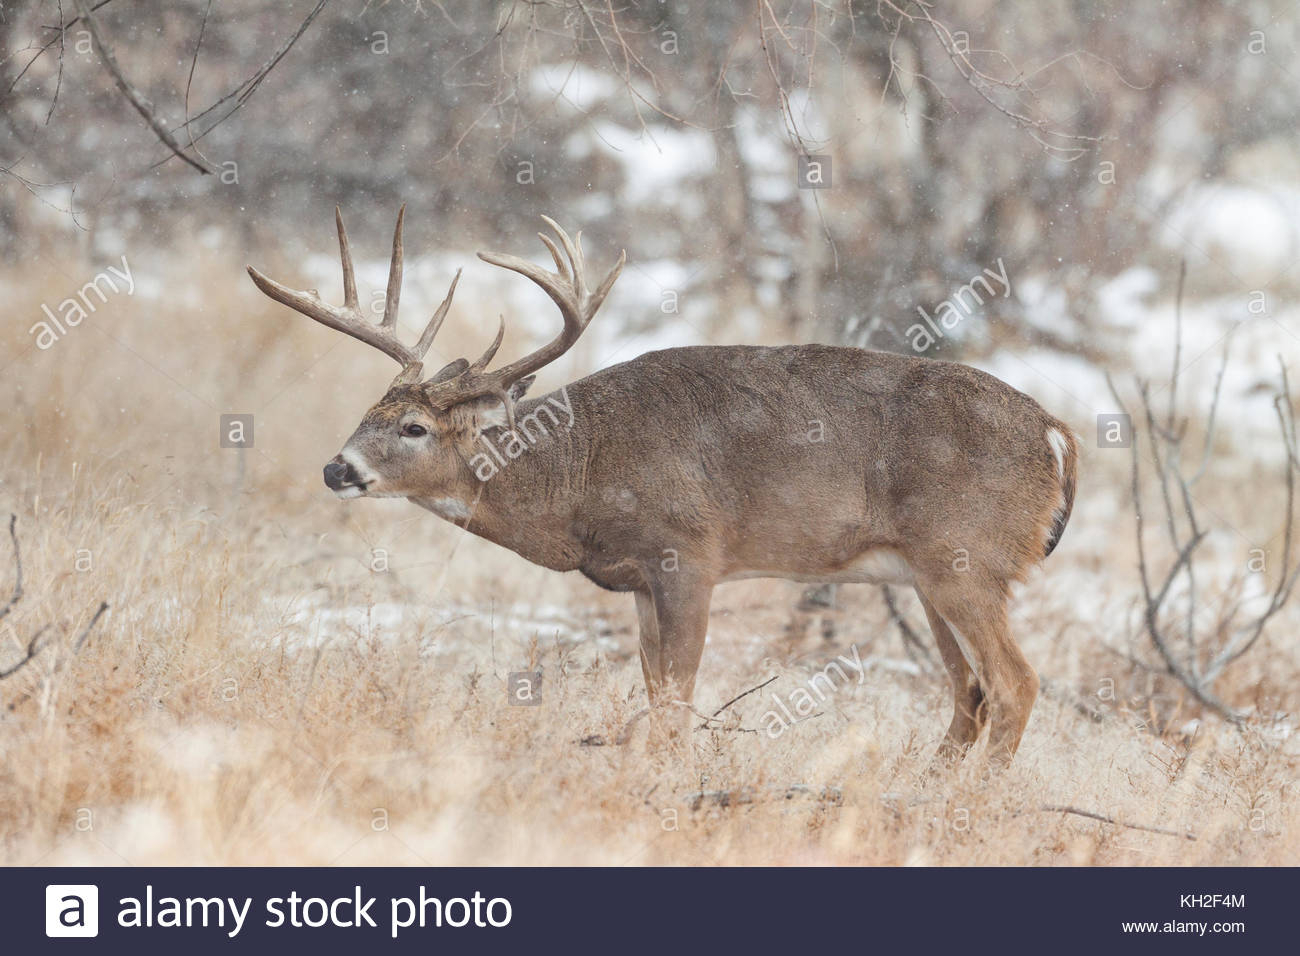 Whitetail Buck Rut Stock Photos & Whitetail Buck Rut Stock